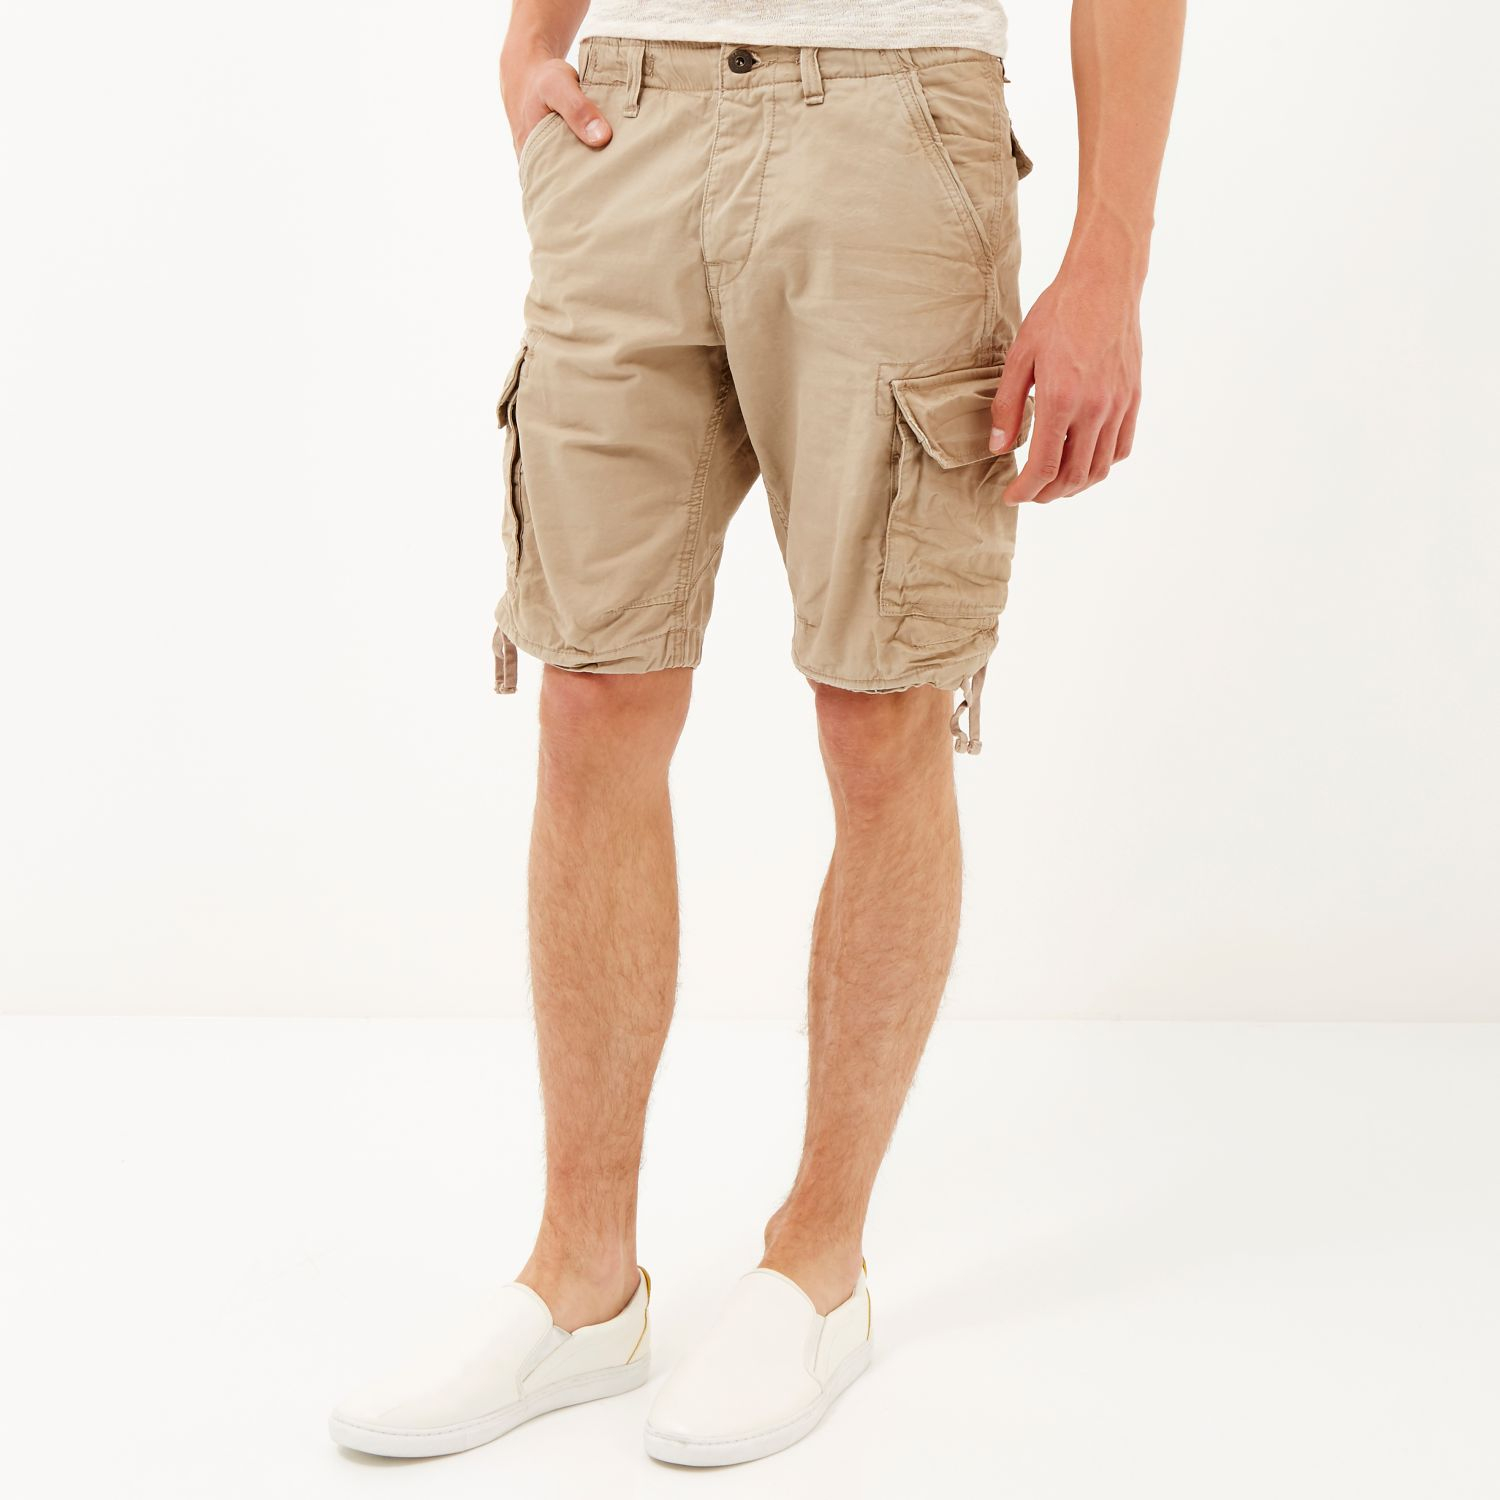 b710a46a98ae9 River Island Grey Jack & Jones Vintage Cargo Shorts in Natural for ...